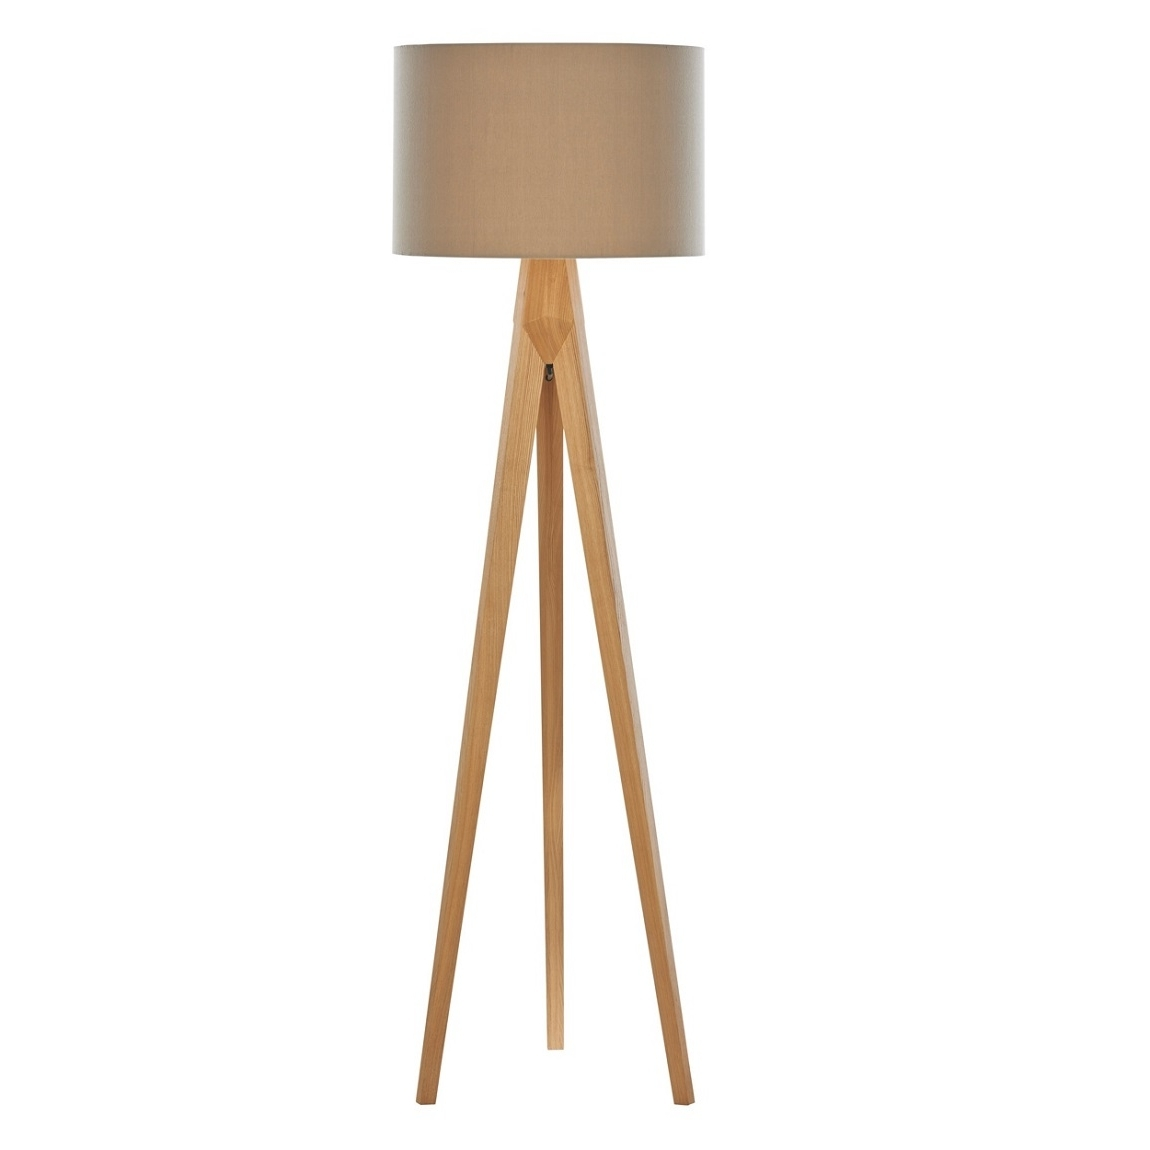 Latest Debenhams Home Collection 'hudson' Wooden Tripod Floor Lamp Living Throughout Debenhams Table Lamps For Living Room (View 15 of 20)